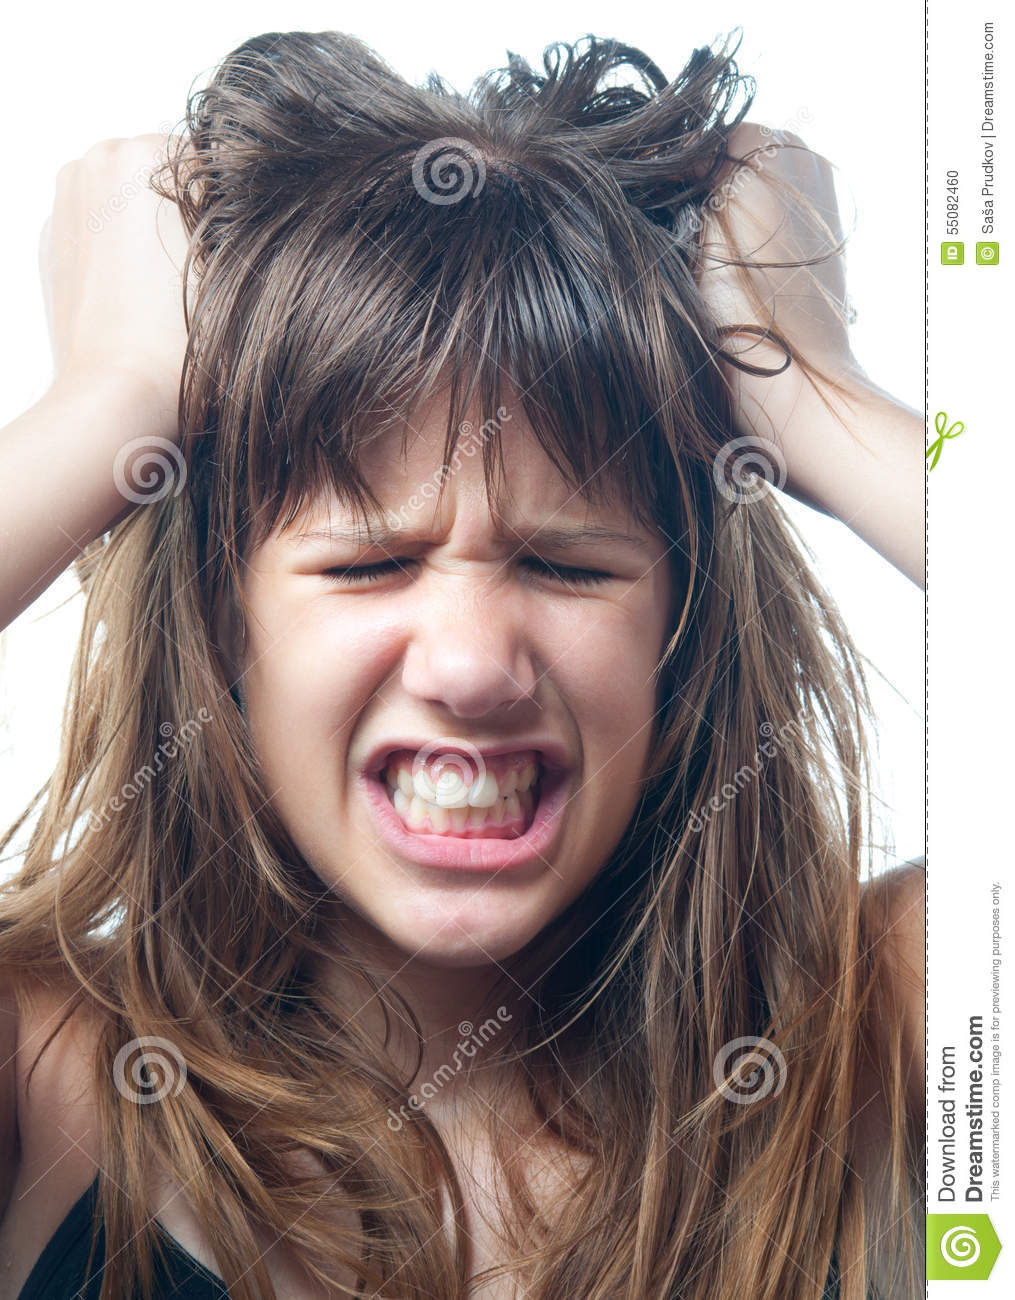 Angry teenage girl screaming isolated on white background